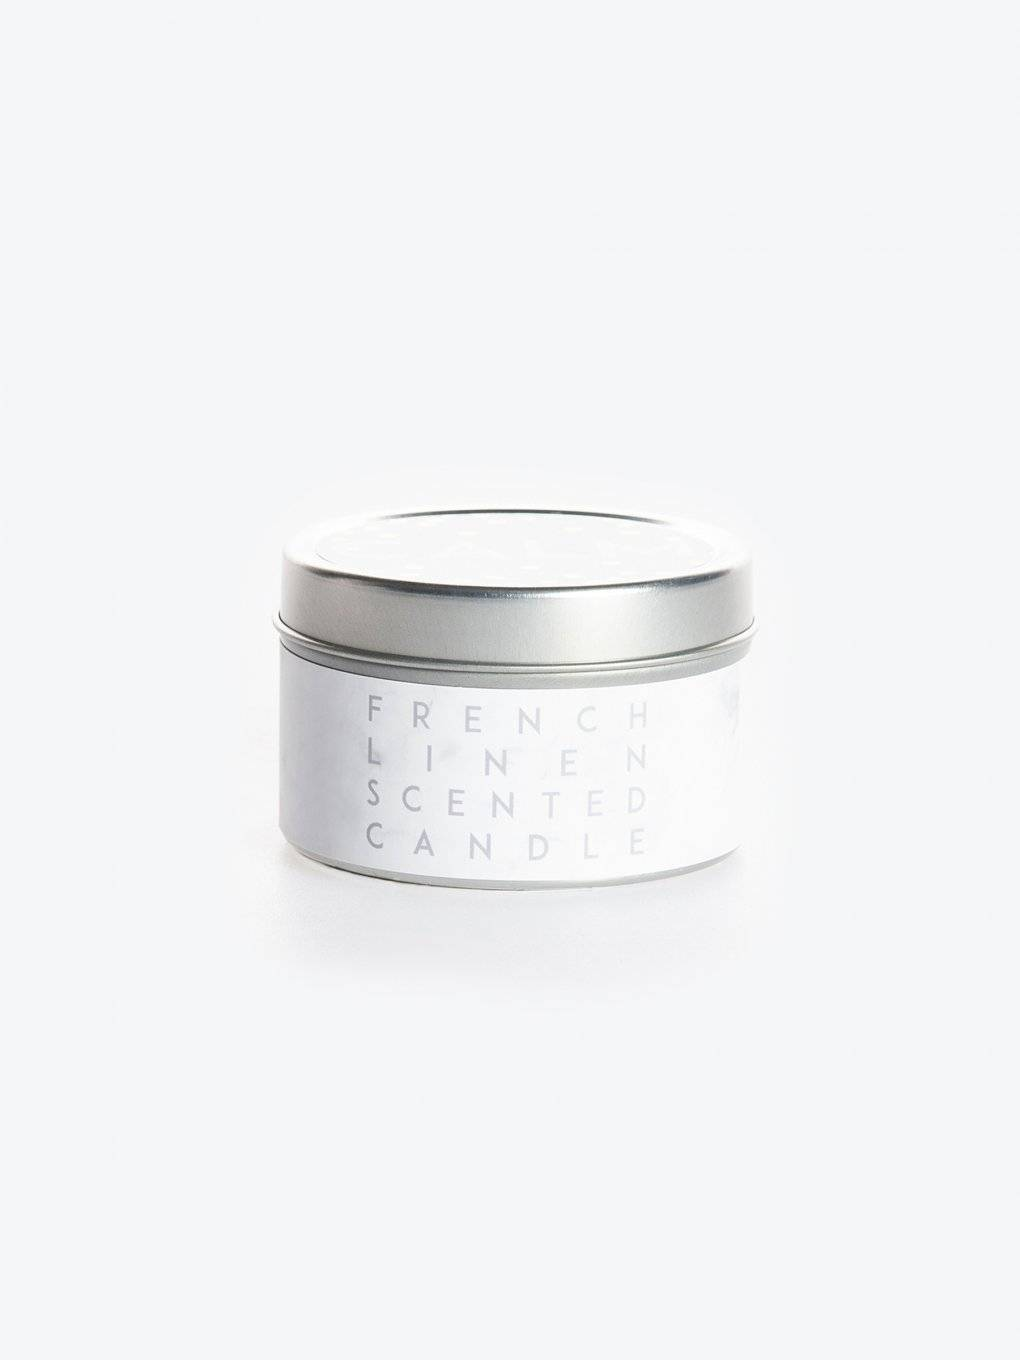 Orange blossom scented candle in a tin